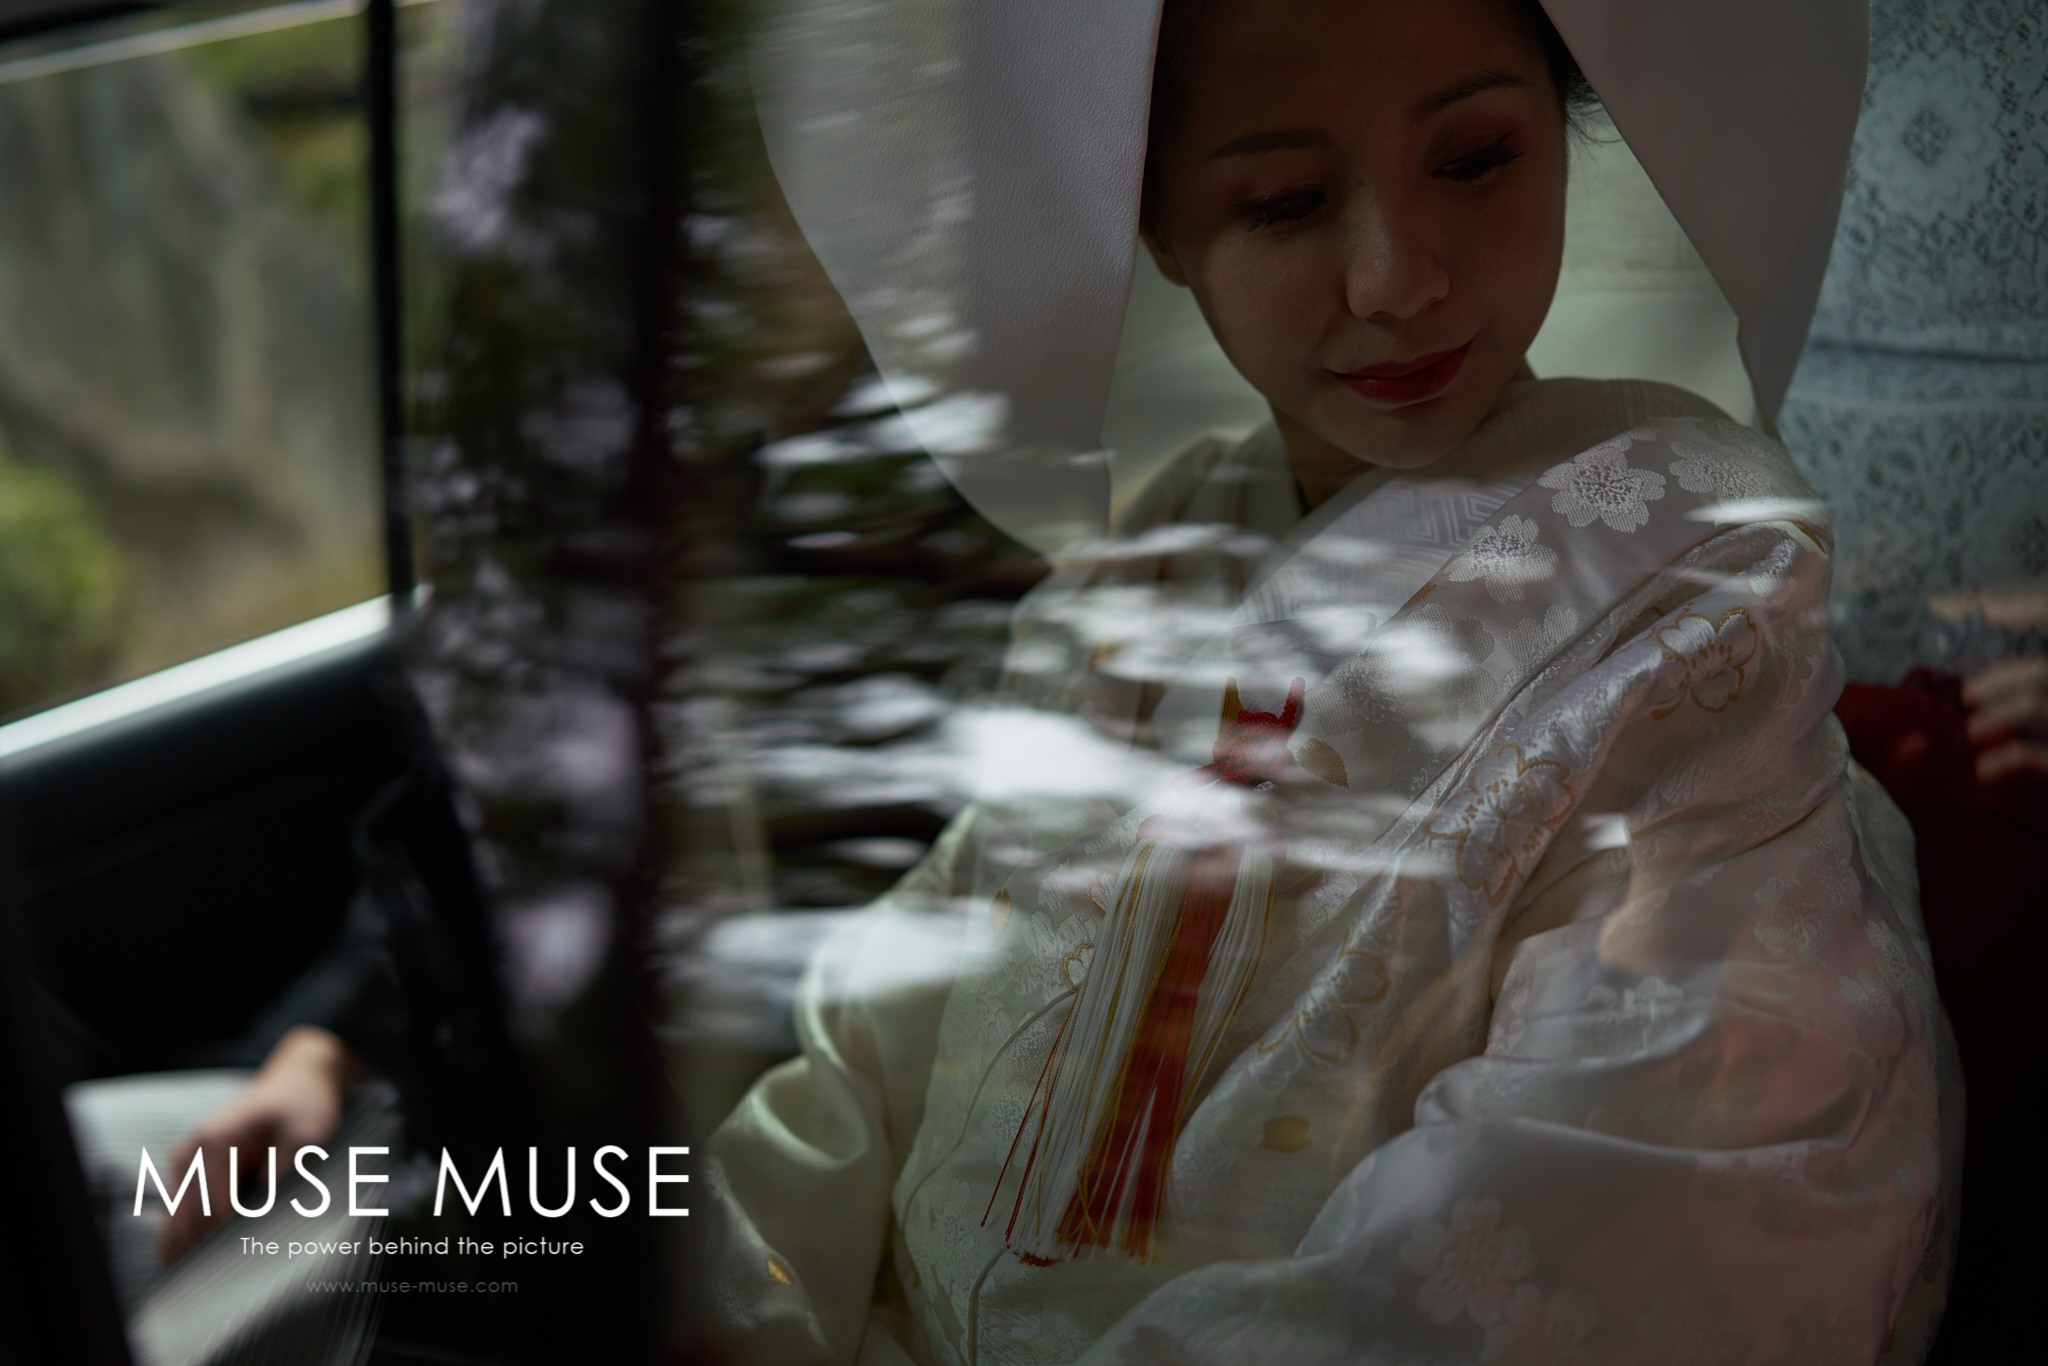 Muse Muse